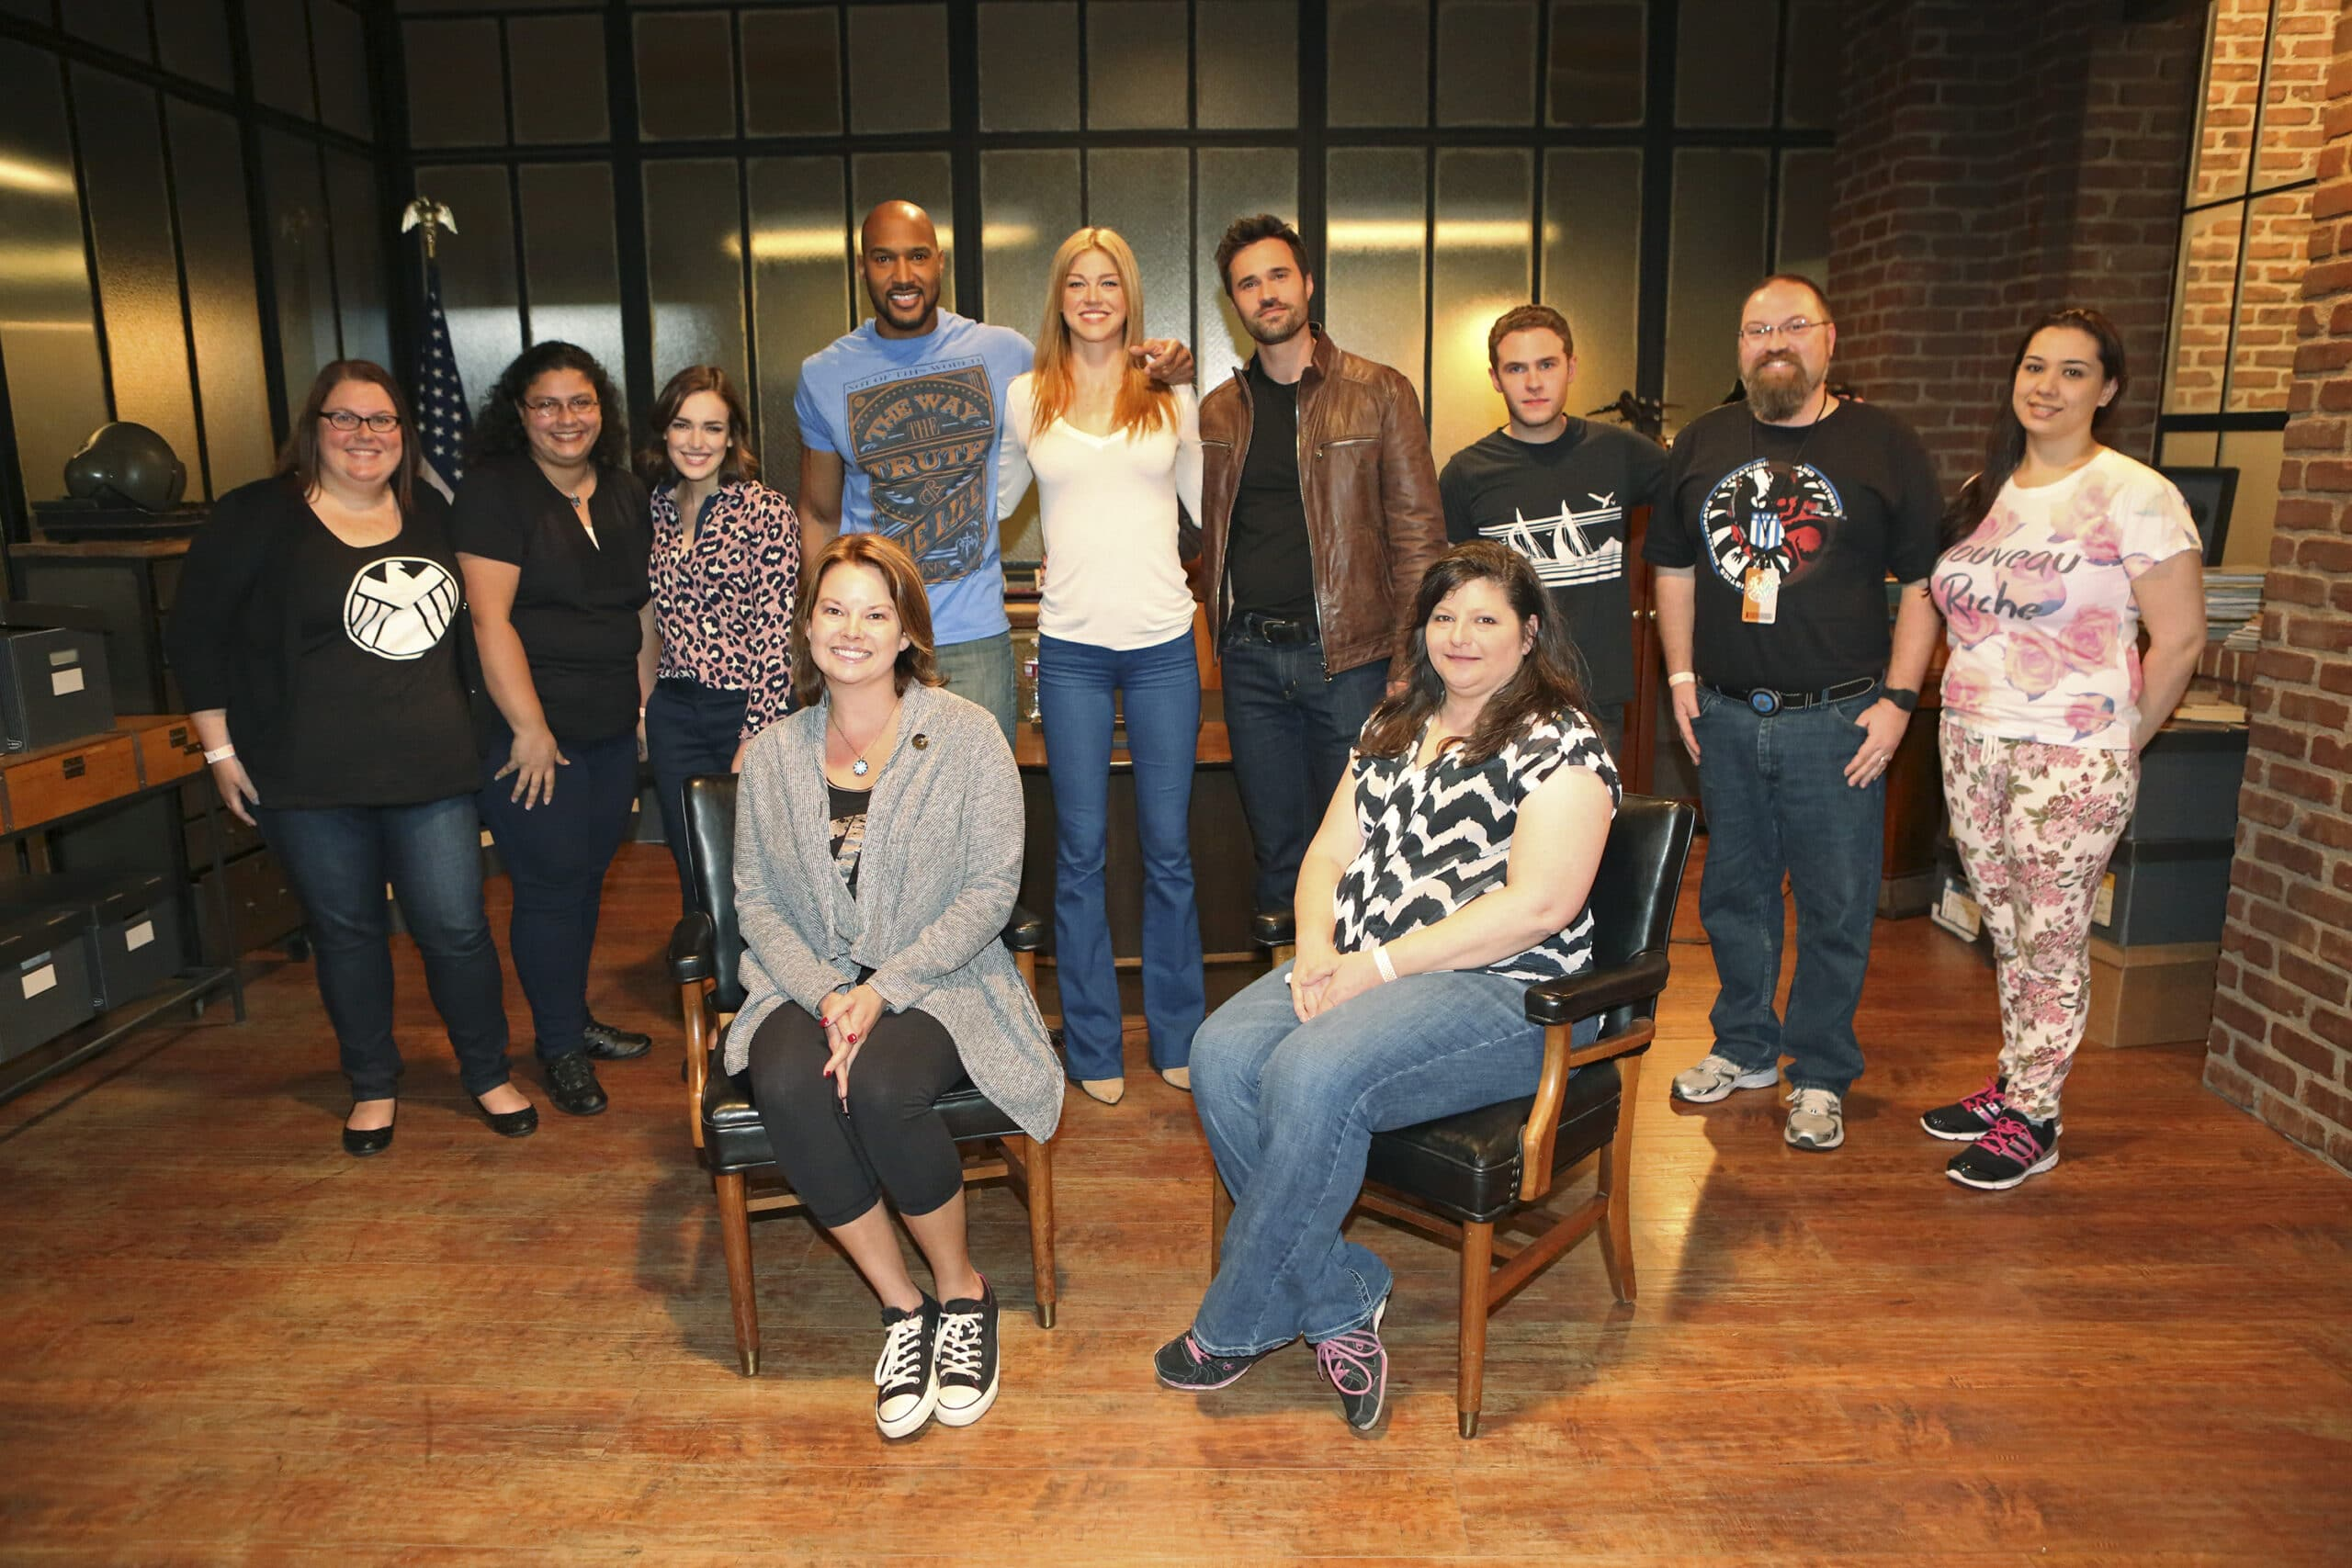 The Cast Of Marvel's Agents of S.H.I.E.L.D Opens Up About Their Roles and Episode 218 Airing Tonight! – #ABCTVEvent #AgentsofSHIELD #AvengersEvent